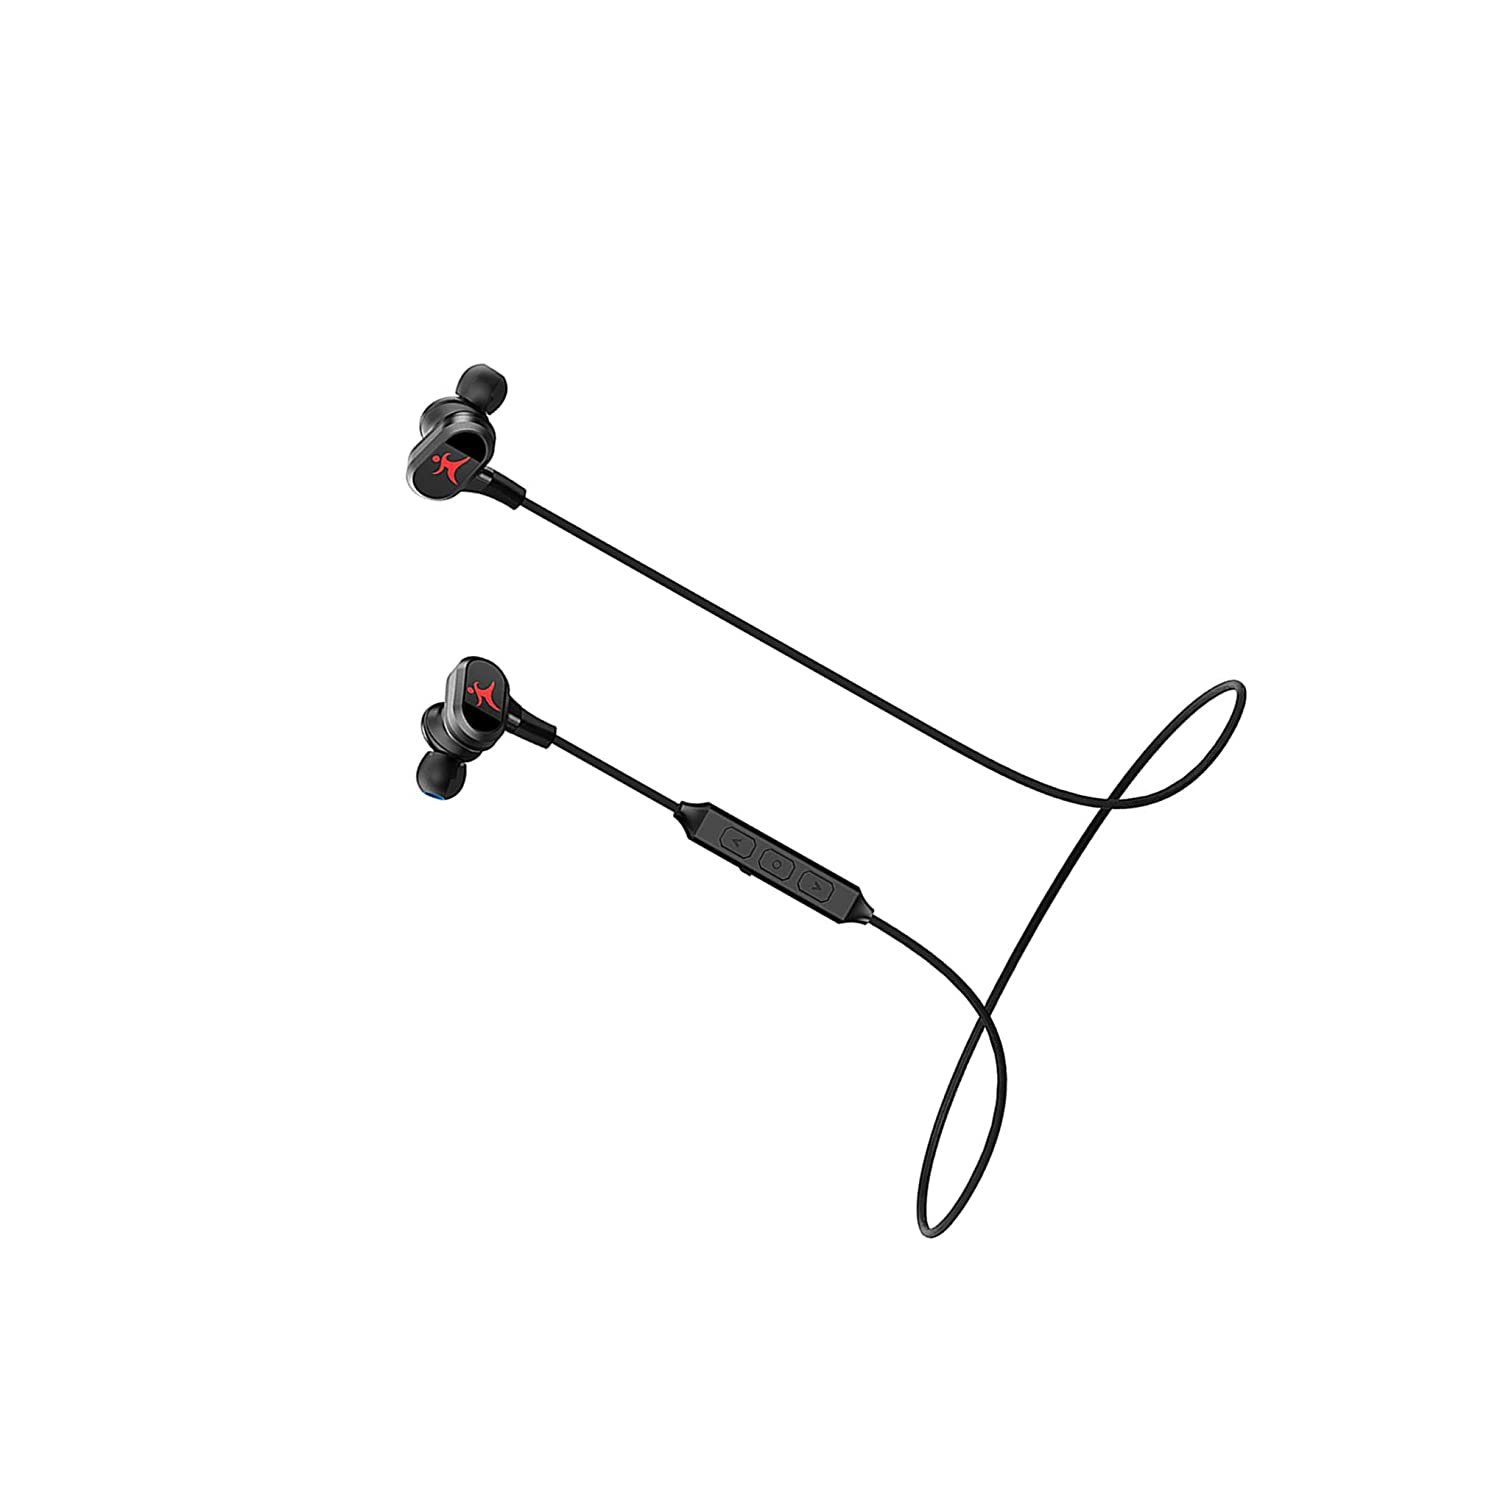 Bluetooth Headphones, BH-602 Wireless Earbuds Sport in-Ear Sweatproof Earphones with Mic(Bluetooth 4.9, aptx, Stereo Bass,Secure Fit Design and Magnetic Switch)